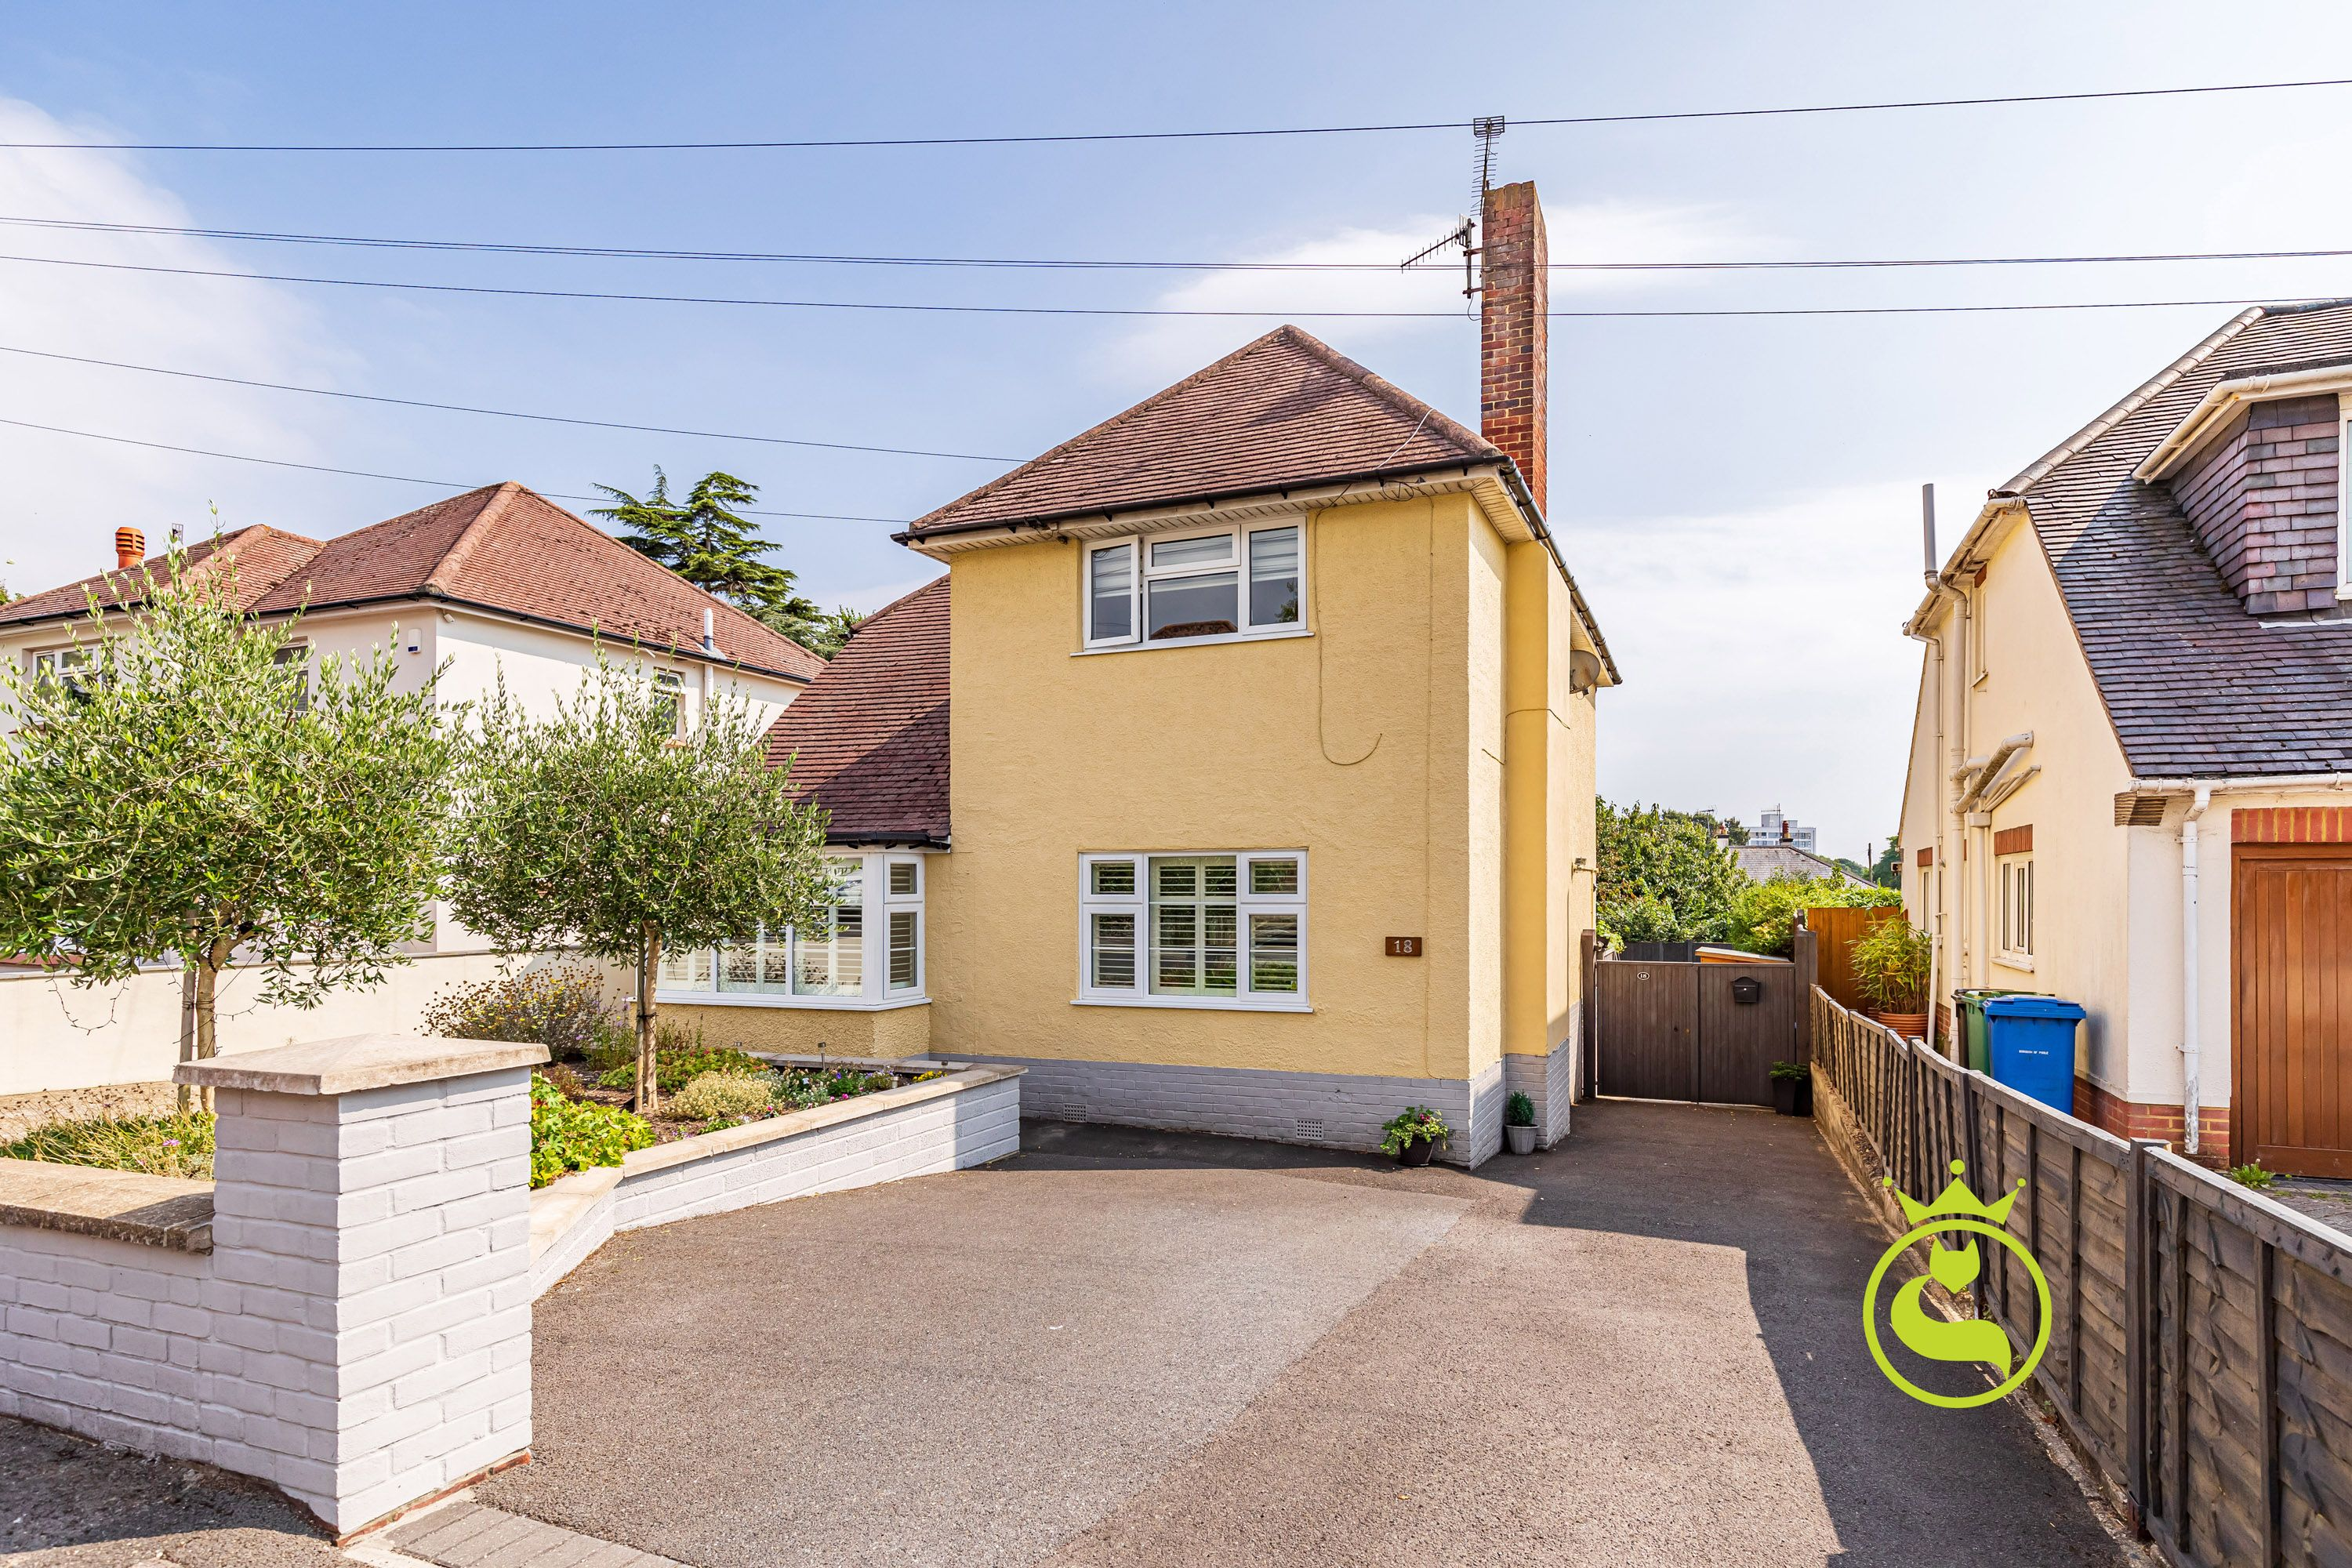 A well presented two bedroom ground floor converted flat with its own entrance, driveway & private sunny garden. NO CHAIN